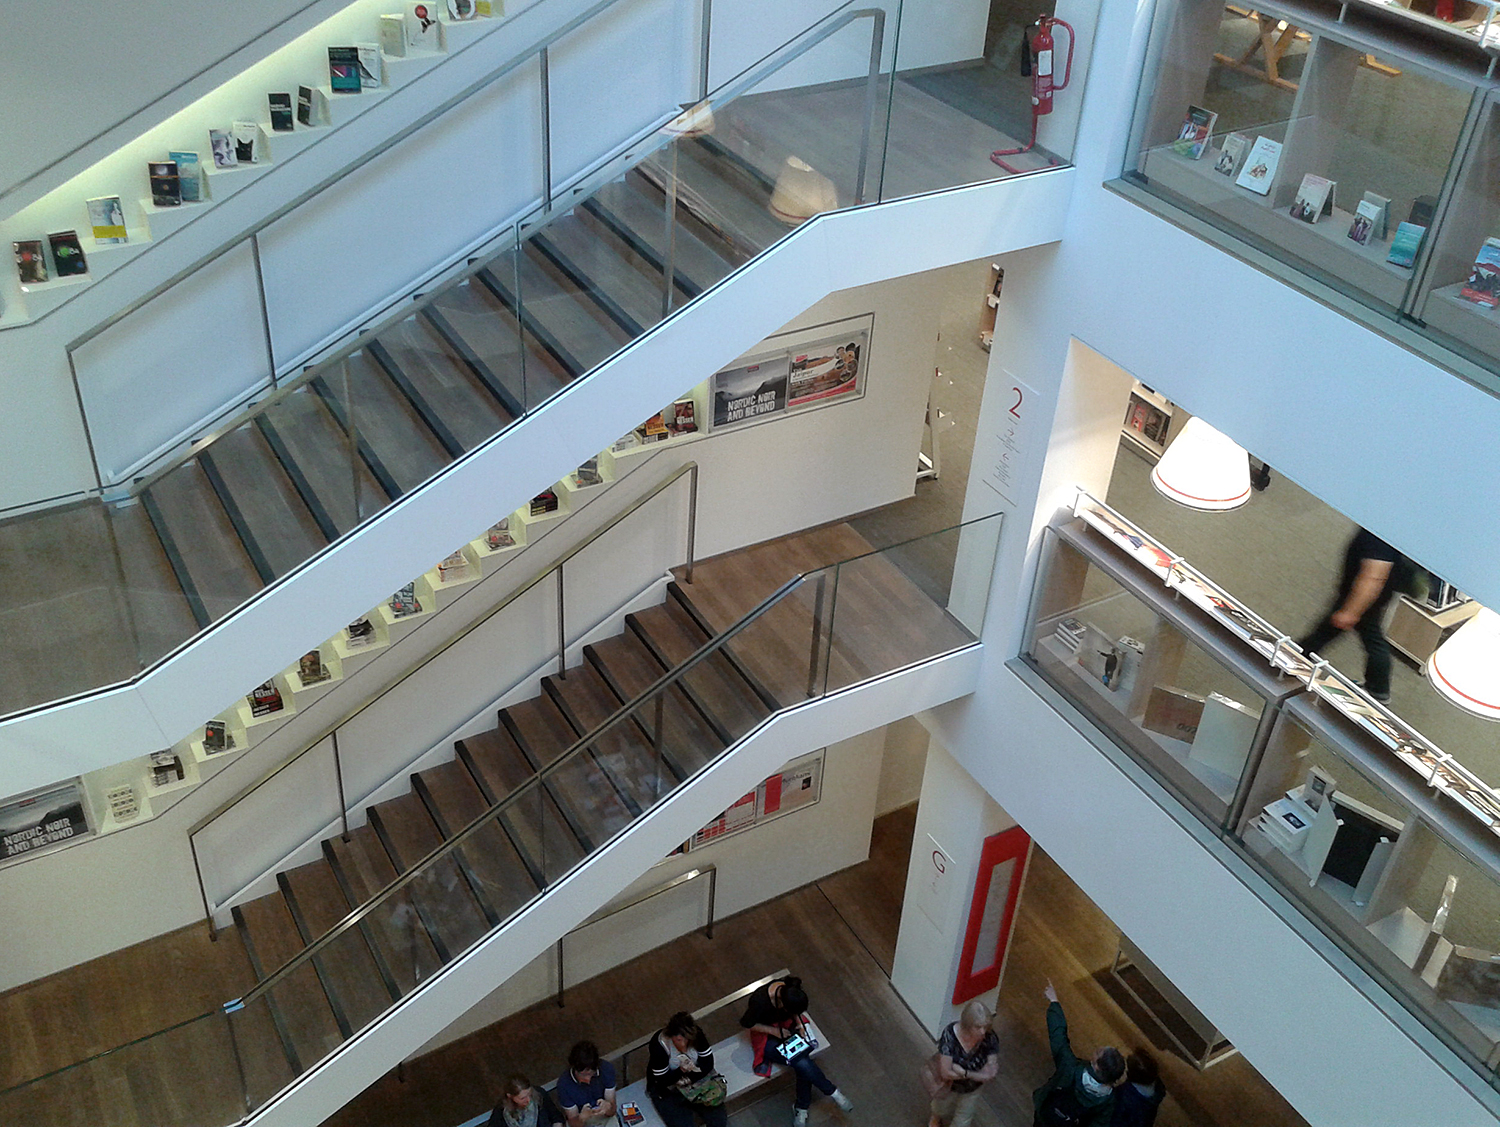 Interior of Foyles bookshop on Charing Cross Road, completed in 2014.